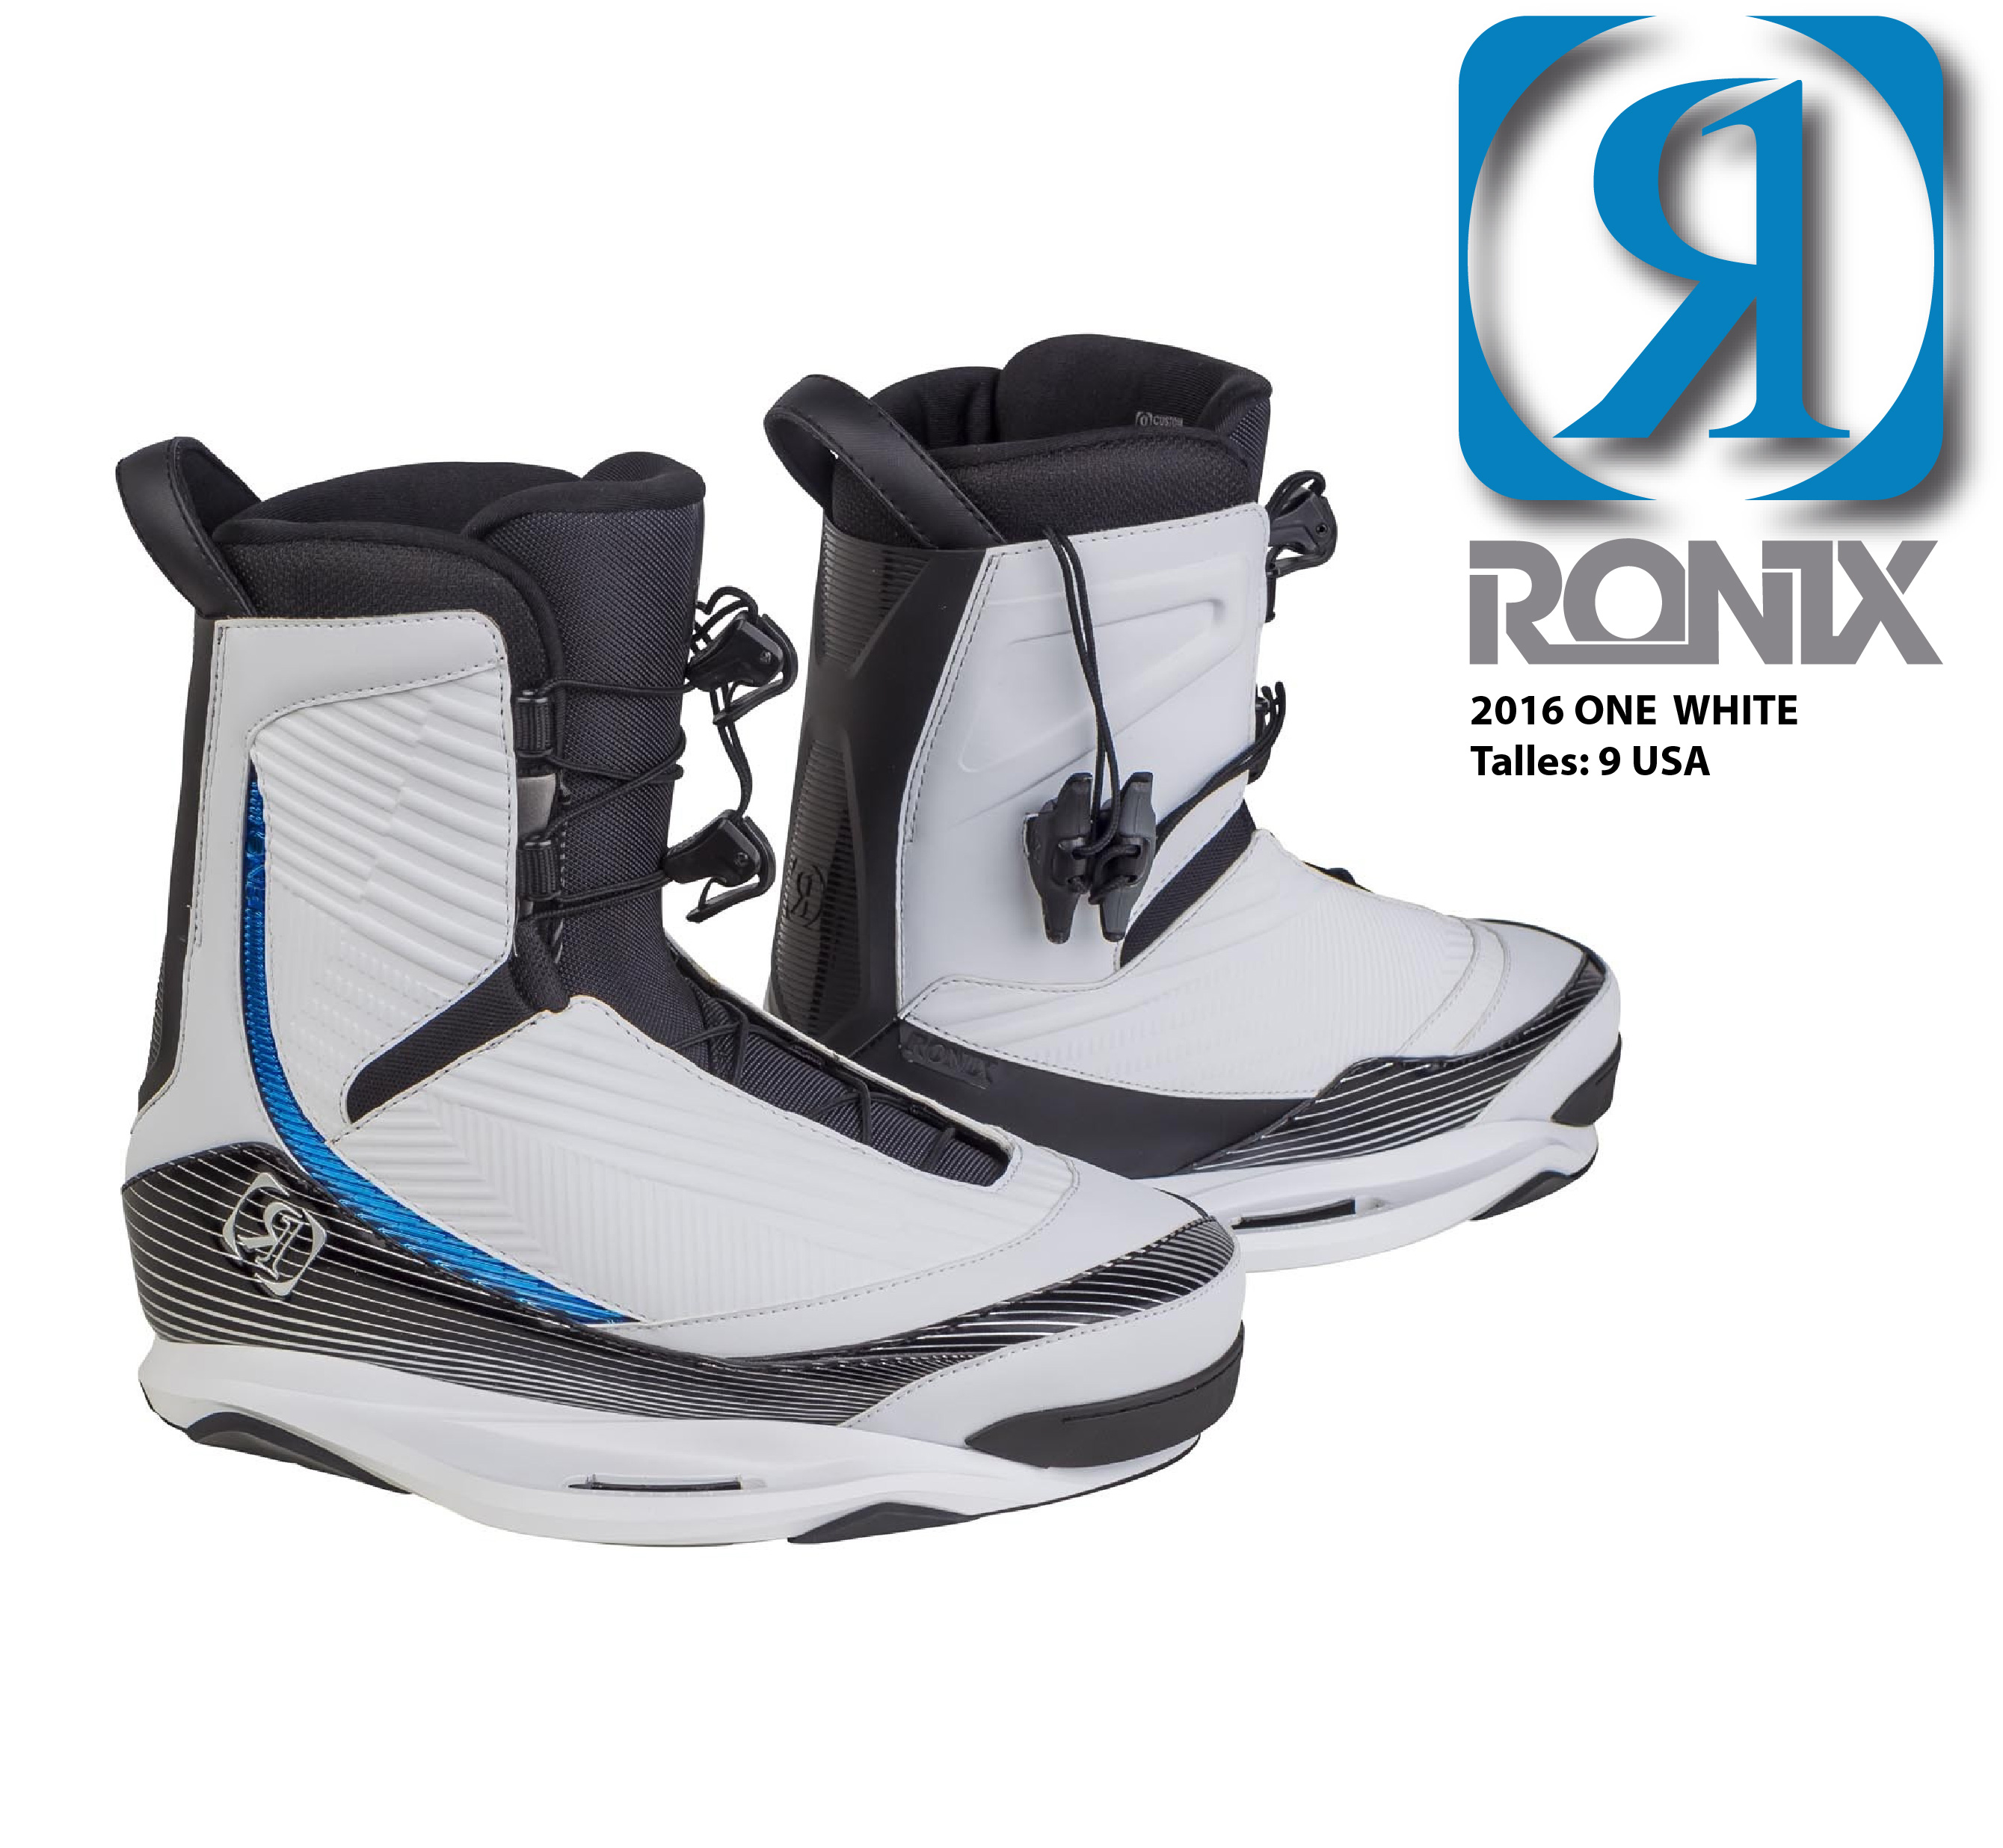 2016 RONIX One White